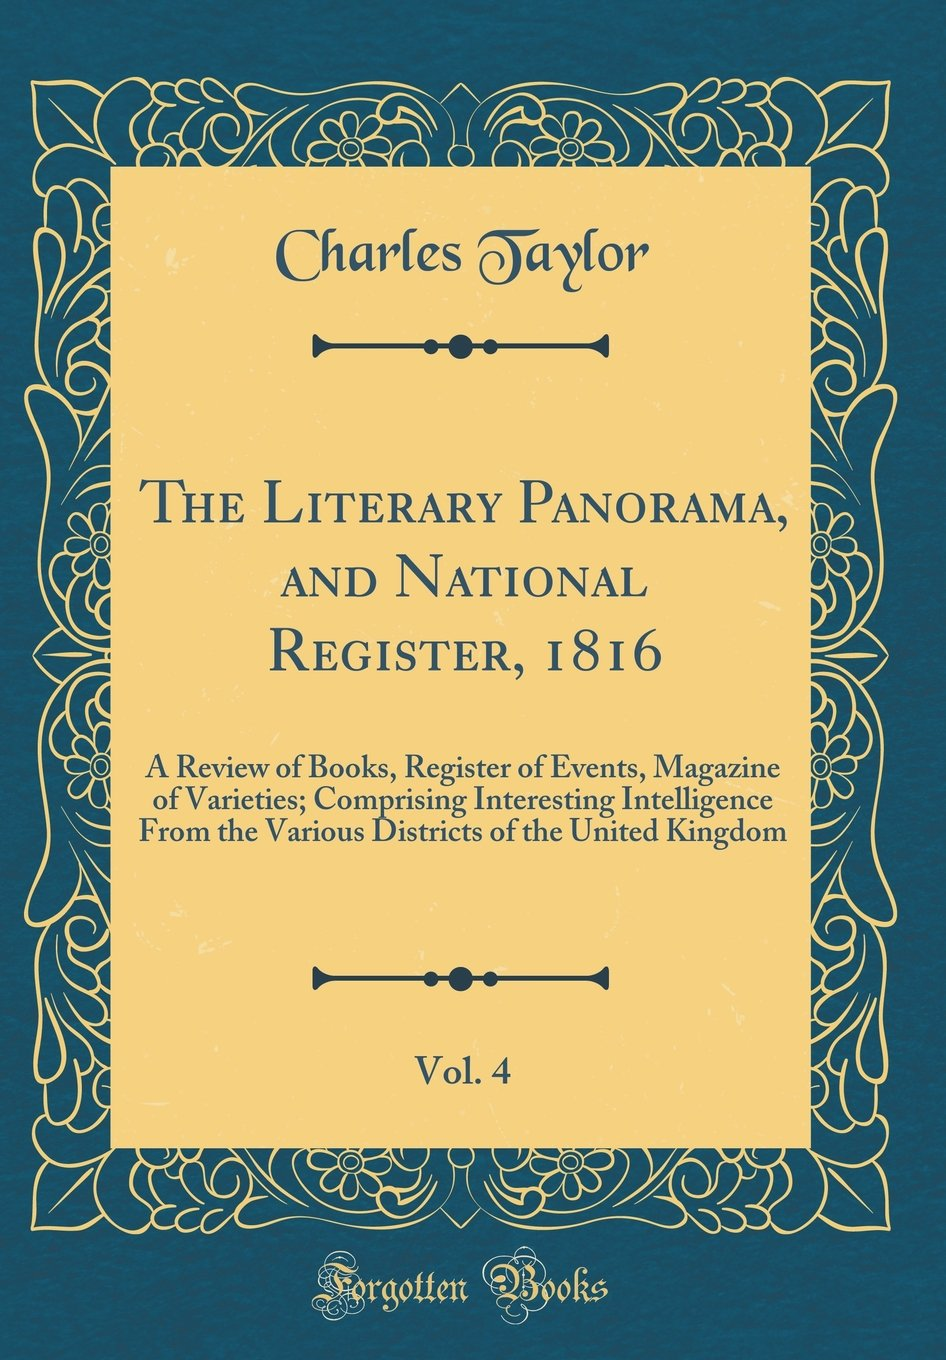 Download The Literary Panorama, and National Register, 1816, Vol. 4: A Review of Books, Register of Events, Magazine of Varieties; Comprising Interesting ... of the United Kingdom (Classic Reprint) pdf